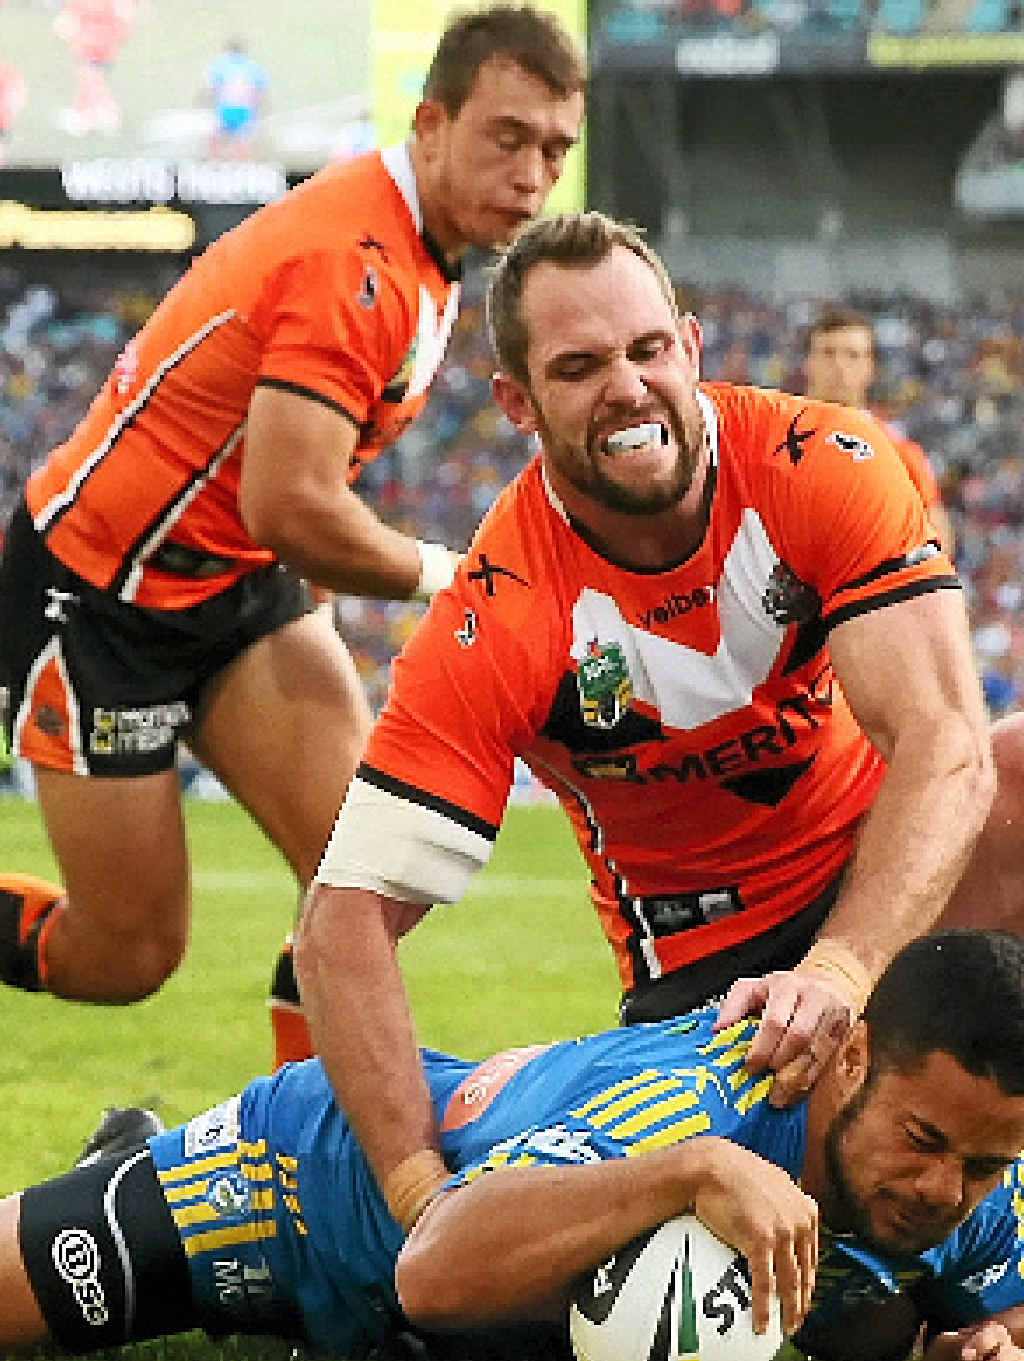 Jarryd Hayne of the Eels scores a try in the game against the Wests Tigers yesterday.